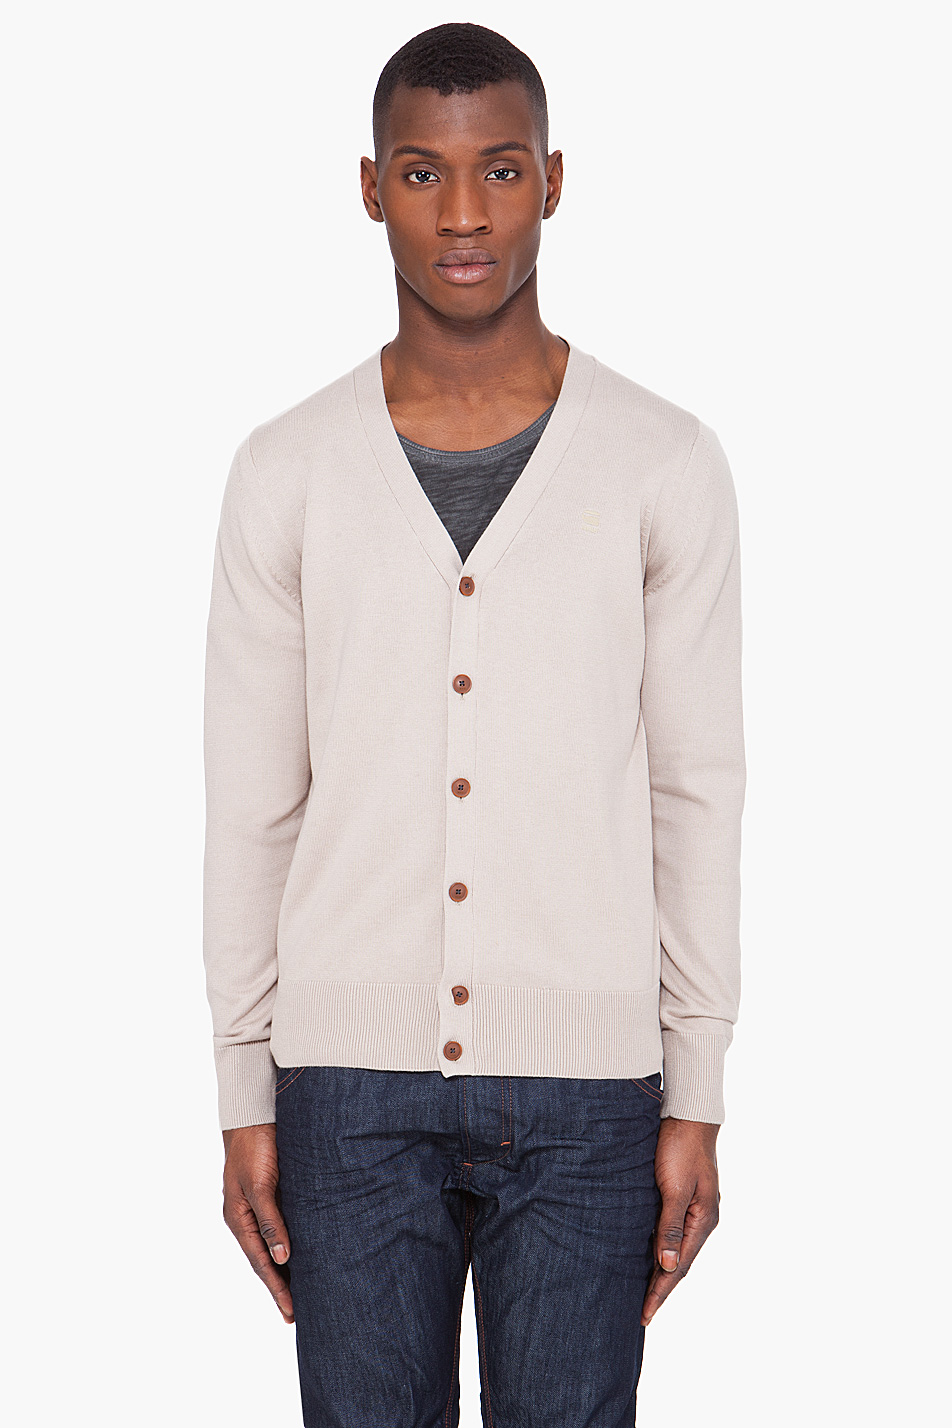 g star raw amos knit cardigan in khaki for men lyst. Black Bedroom Furniture Sets. Home Design Ideas